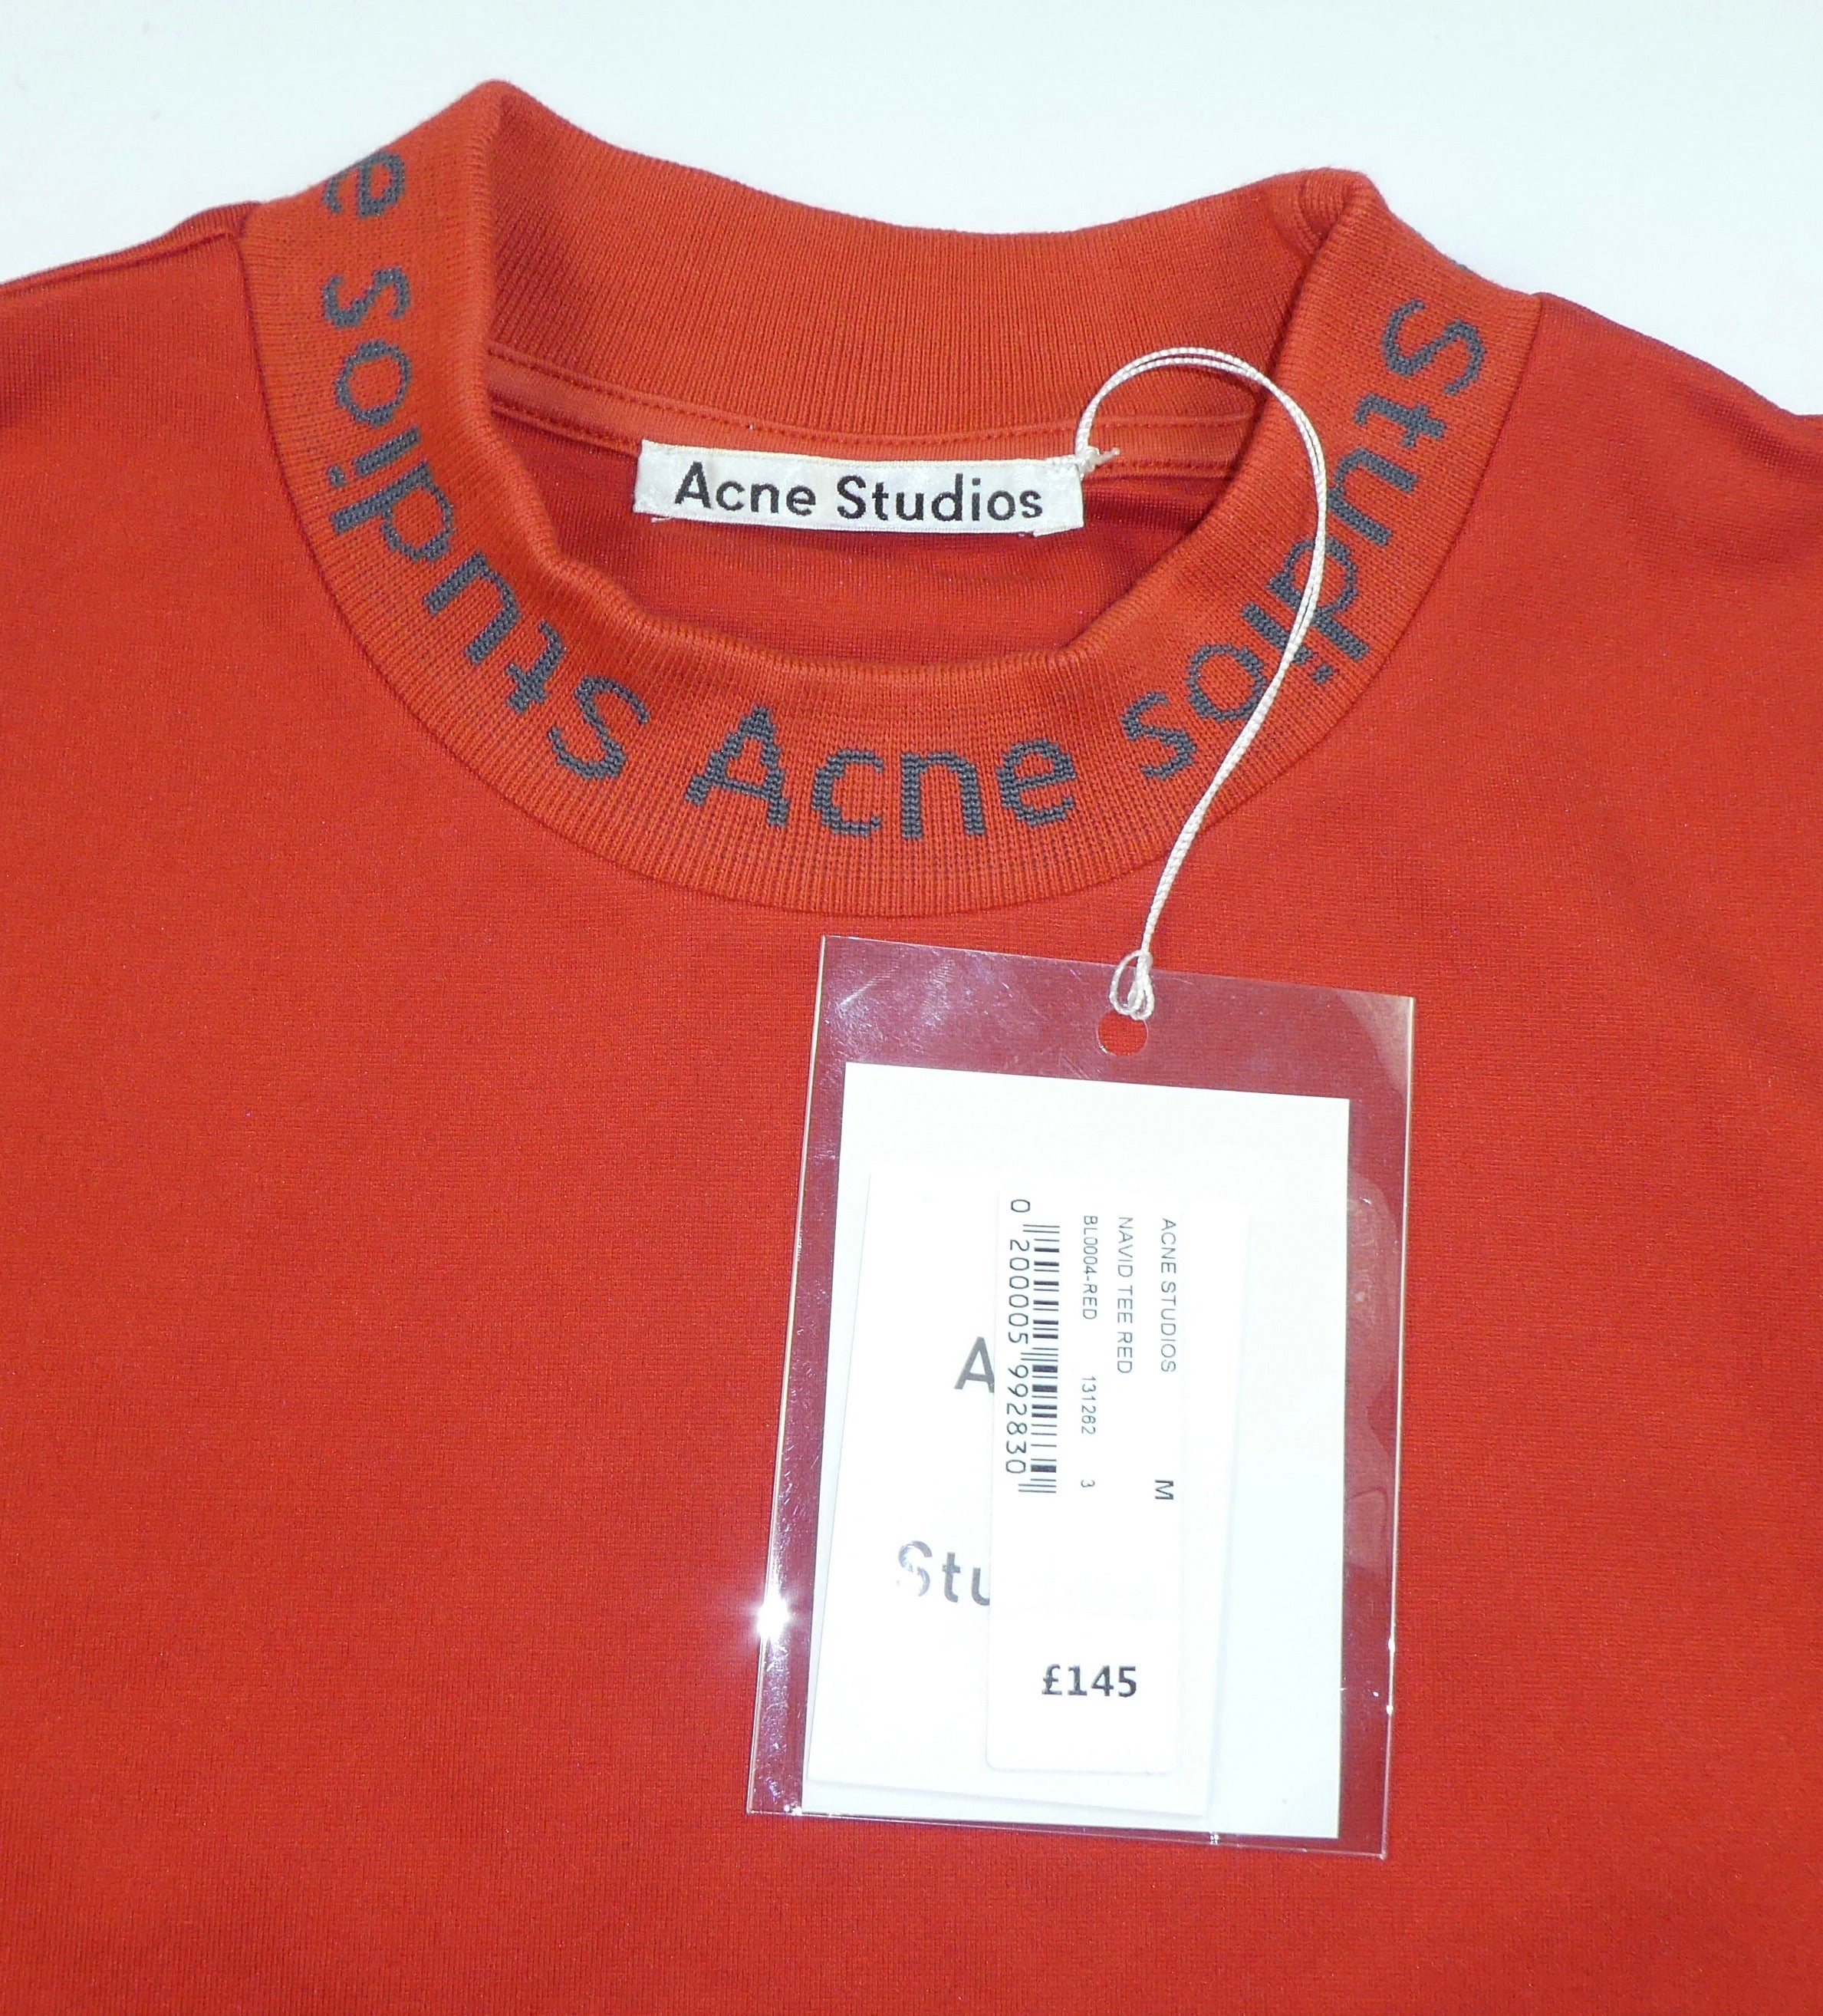 Acne Studios Navid Neck Logo T Shirt BNWT (£145) - Medium